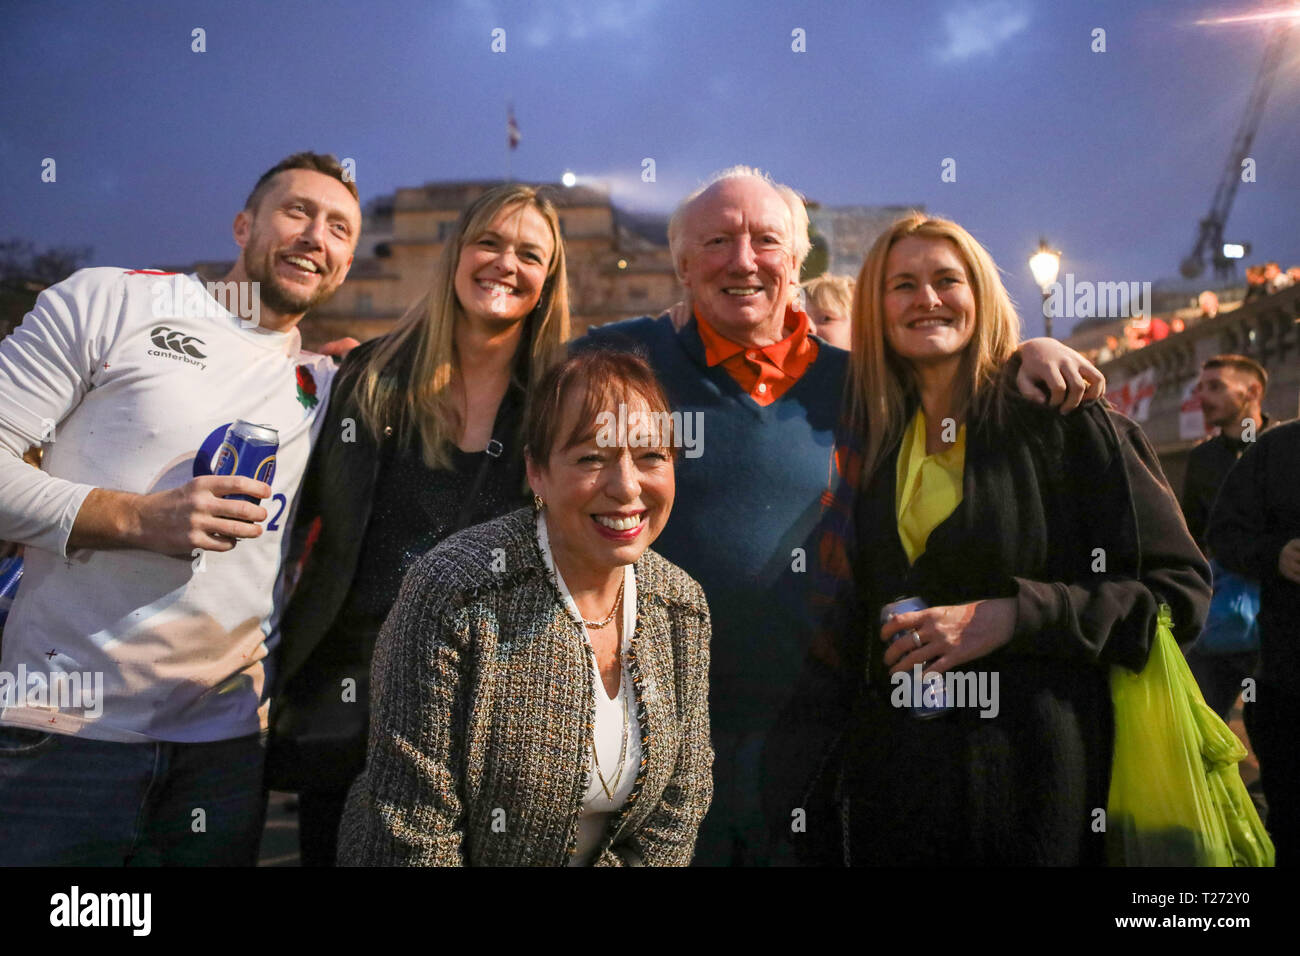 London, UK. 30th March, 2019. Mayor of Sunderland Lynda Scanlan, center, with member of Sunderland's 1973 FA Cup winning team, Micky Horswill, 2nd right, Travelling Sunderland supporters on the evening before their EFL Trophy final against Portsmouth at Wembley take over Trafalgar Square. Penelope Barritt/Alamy Live News - Stock Image